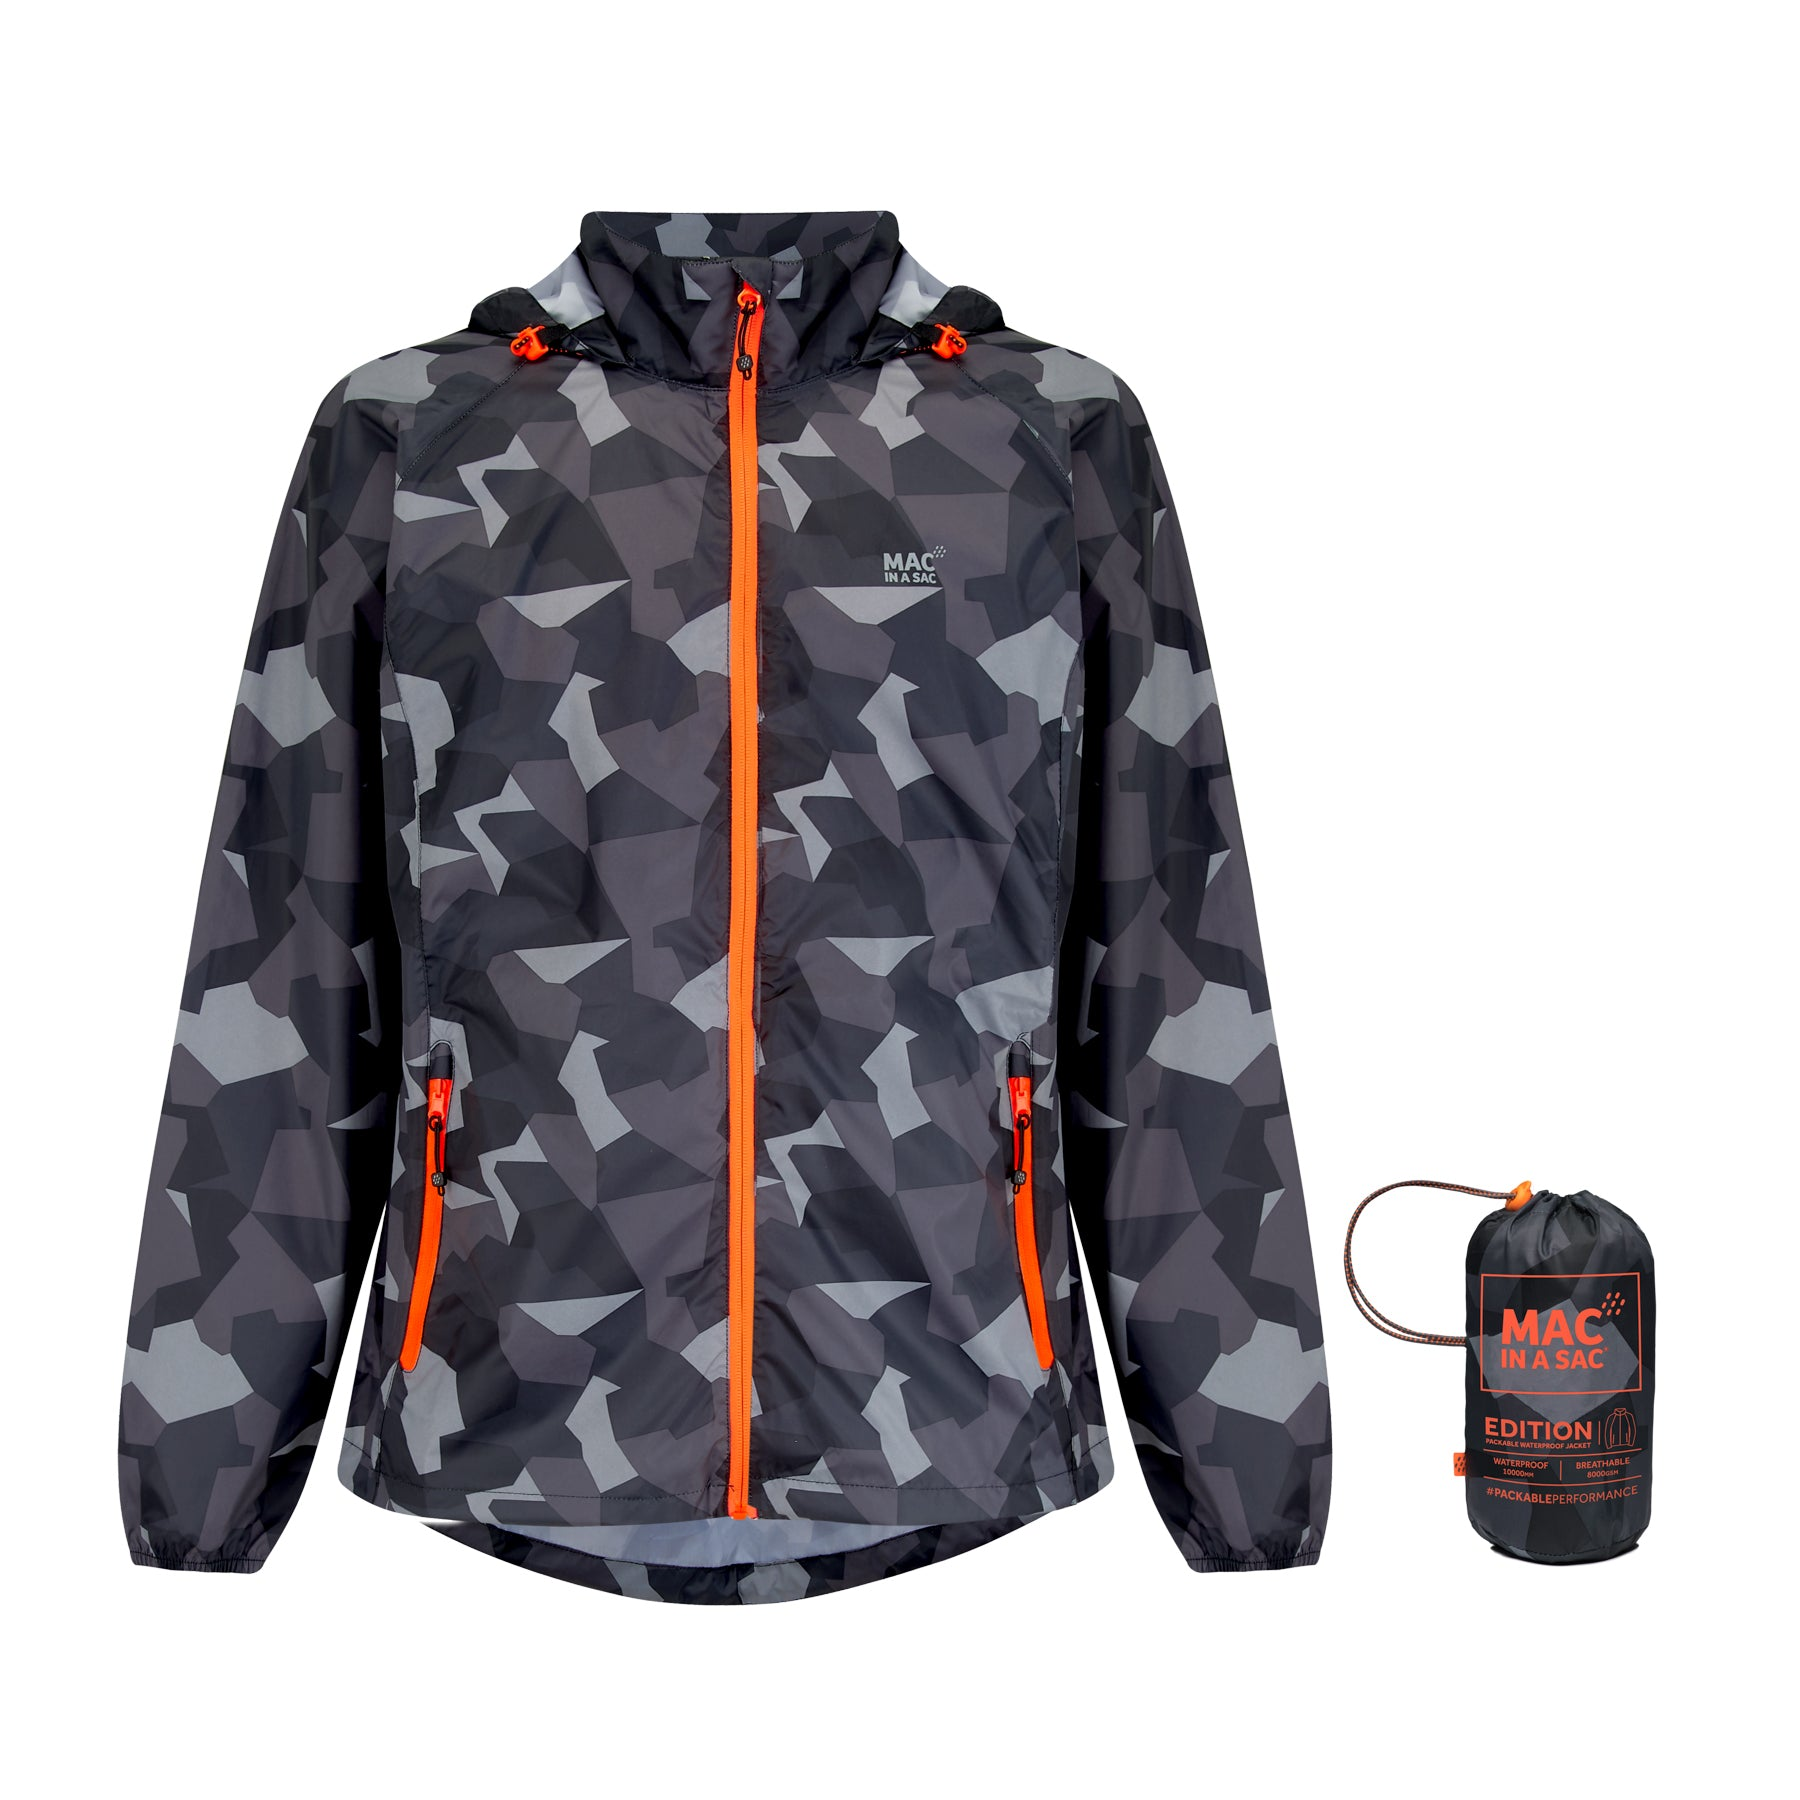 Origin Packable Waterproof Jacket - Black Camo